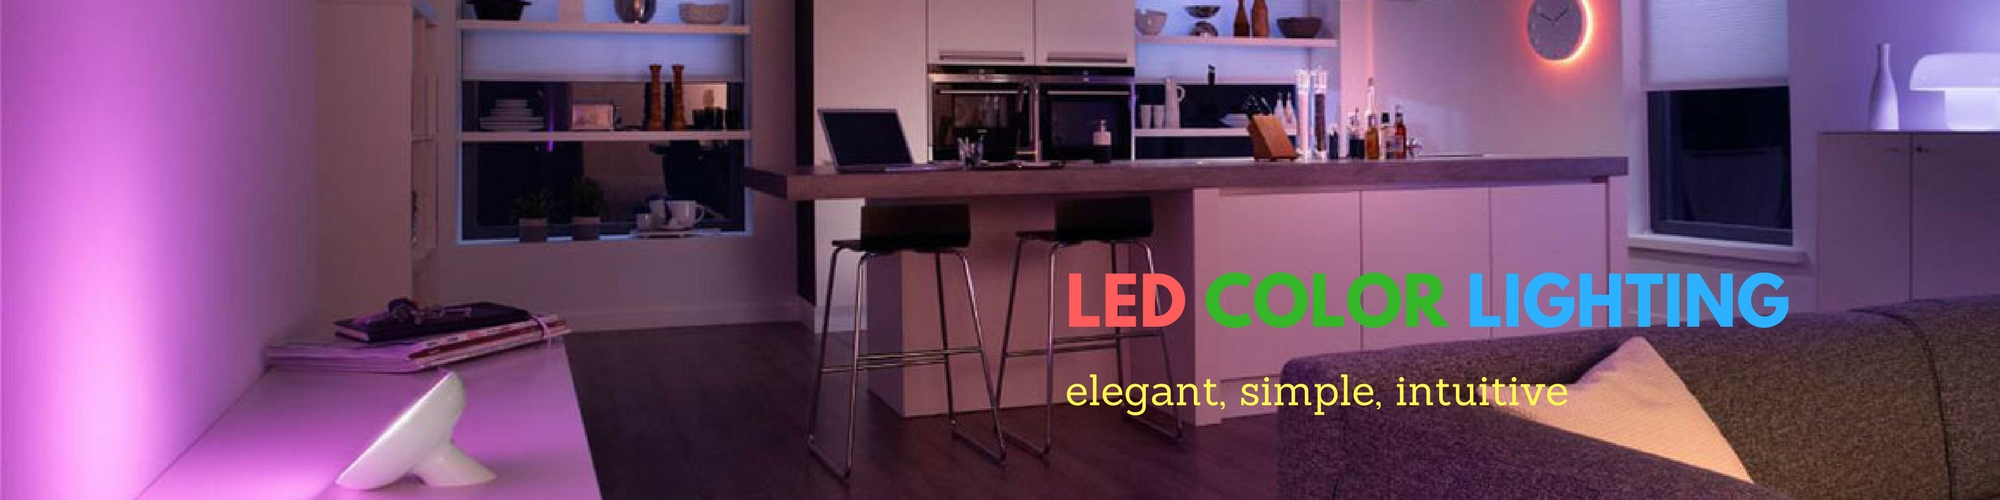 LED Color Lighting